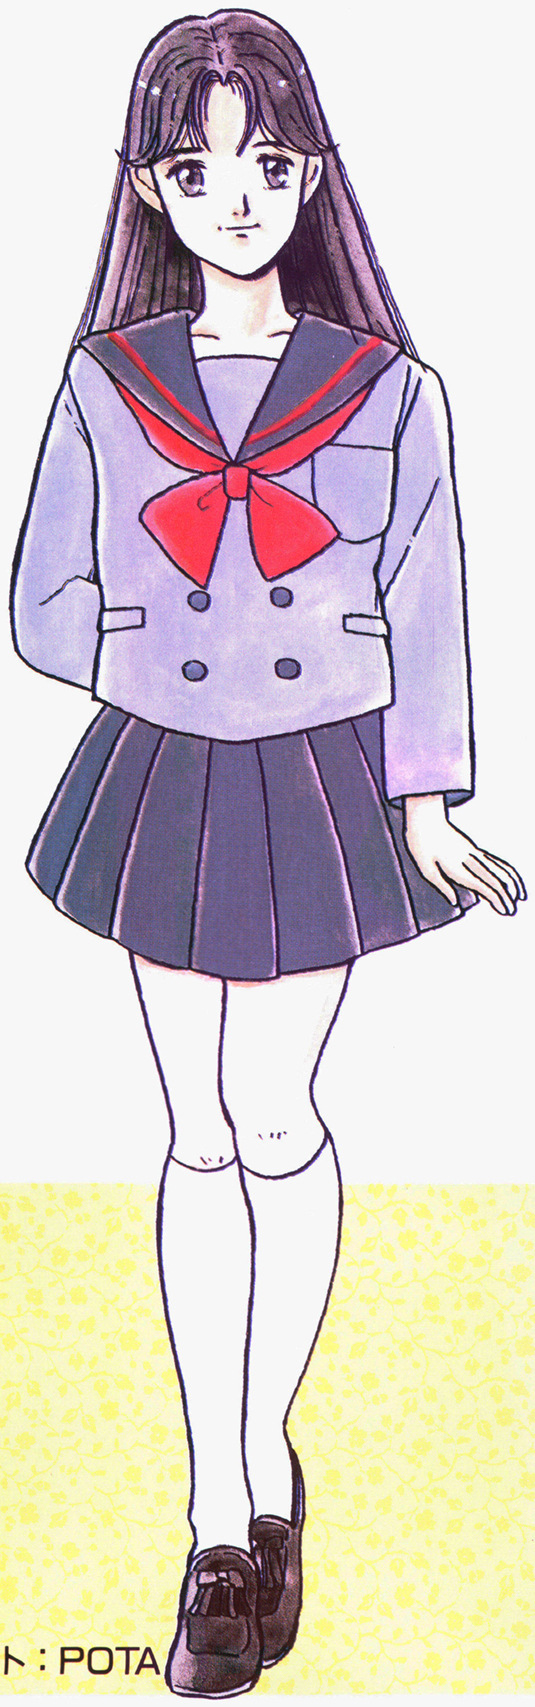 Picture of a girl (possibly Rei) dressed in the school uniform of TA Girls Academy.